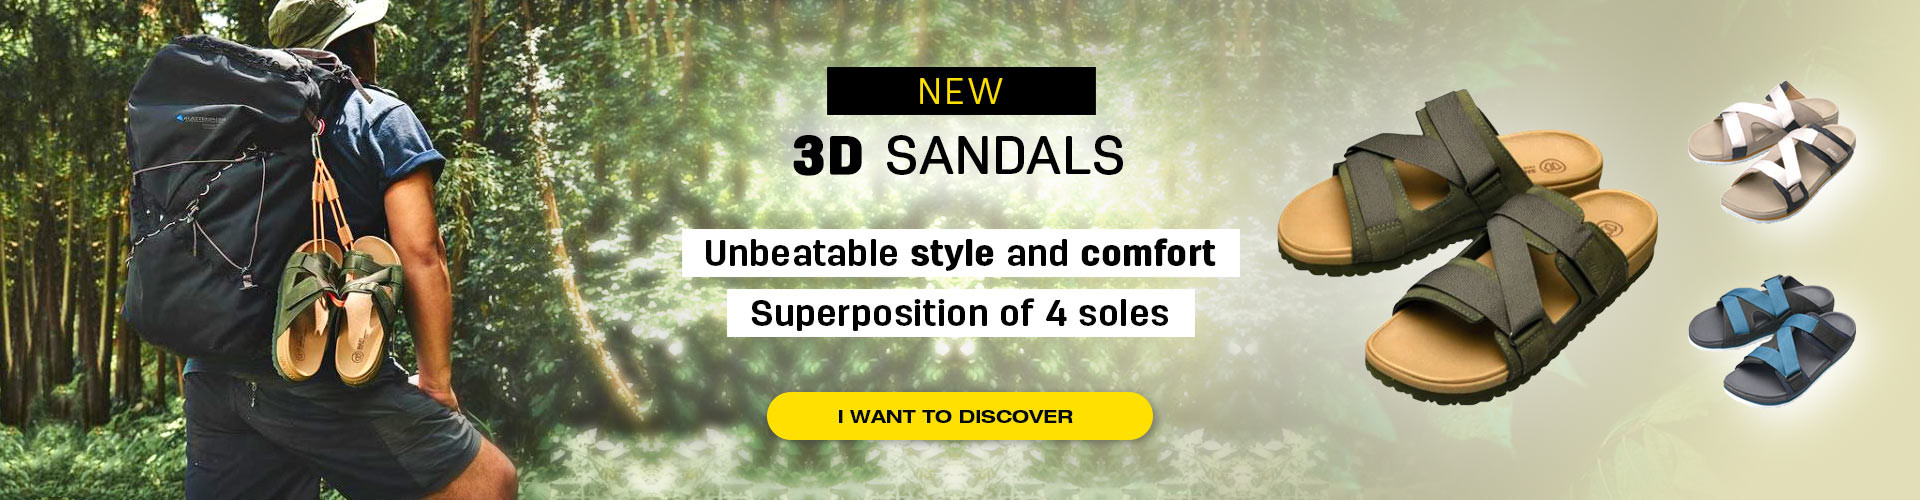 Sandals with 4-layer sole construction providing great comfort and unbeatable style